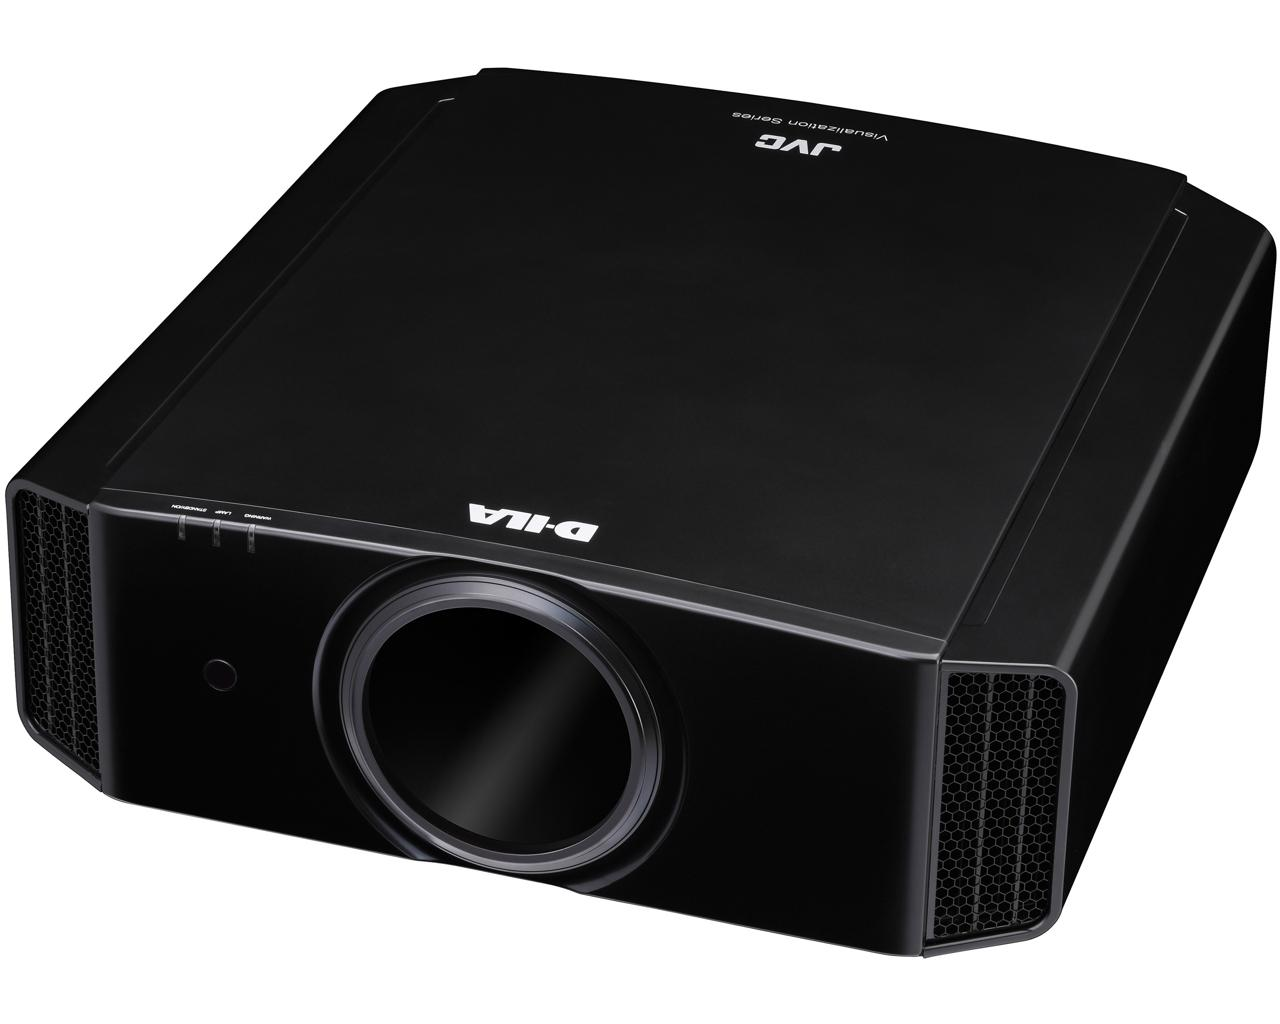 DLA-VS2300G Professional full HD Visualisation Series projector ...